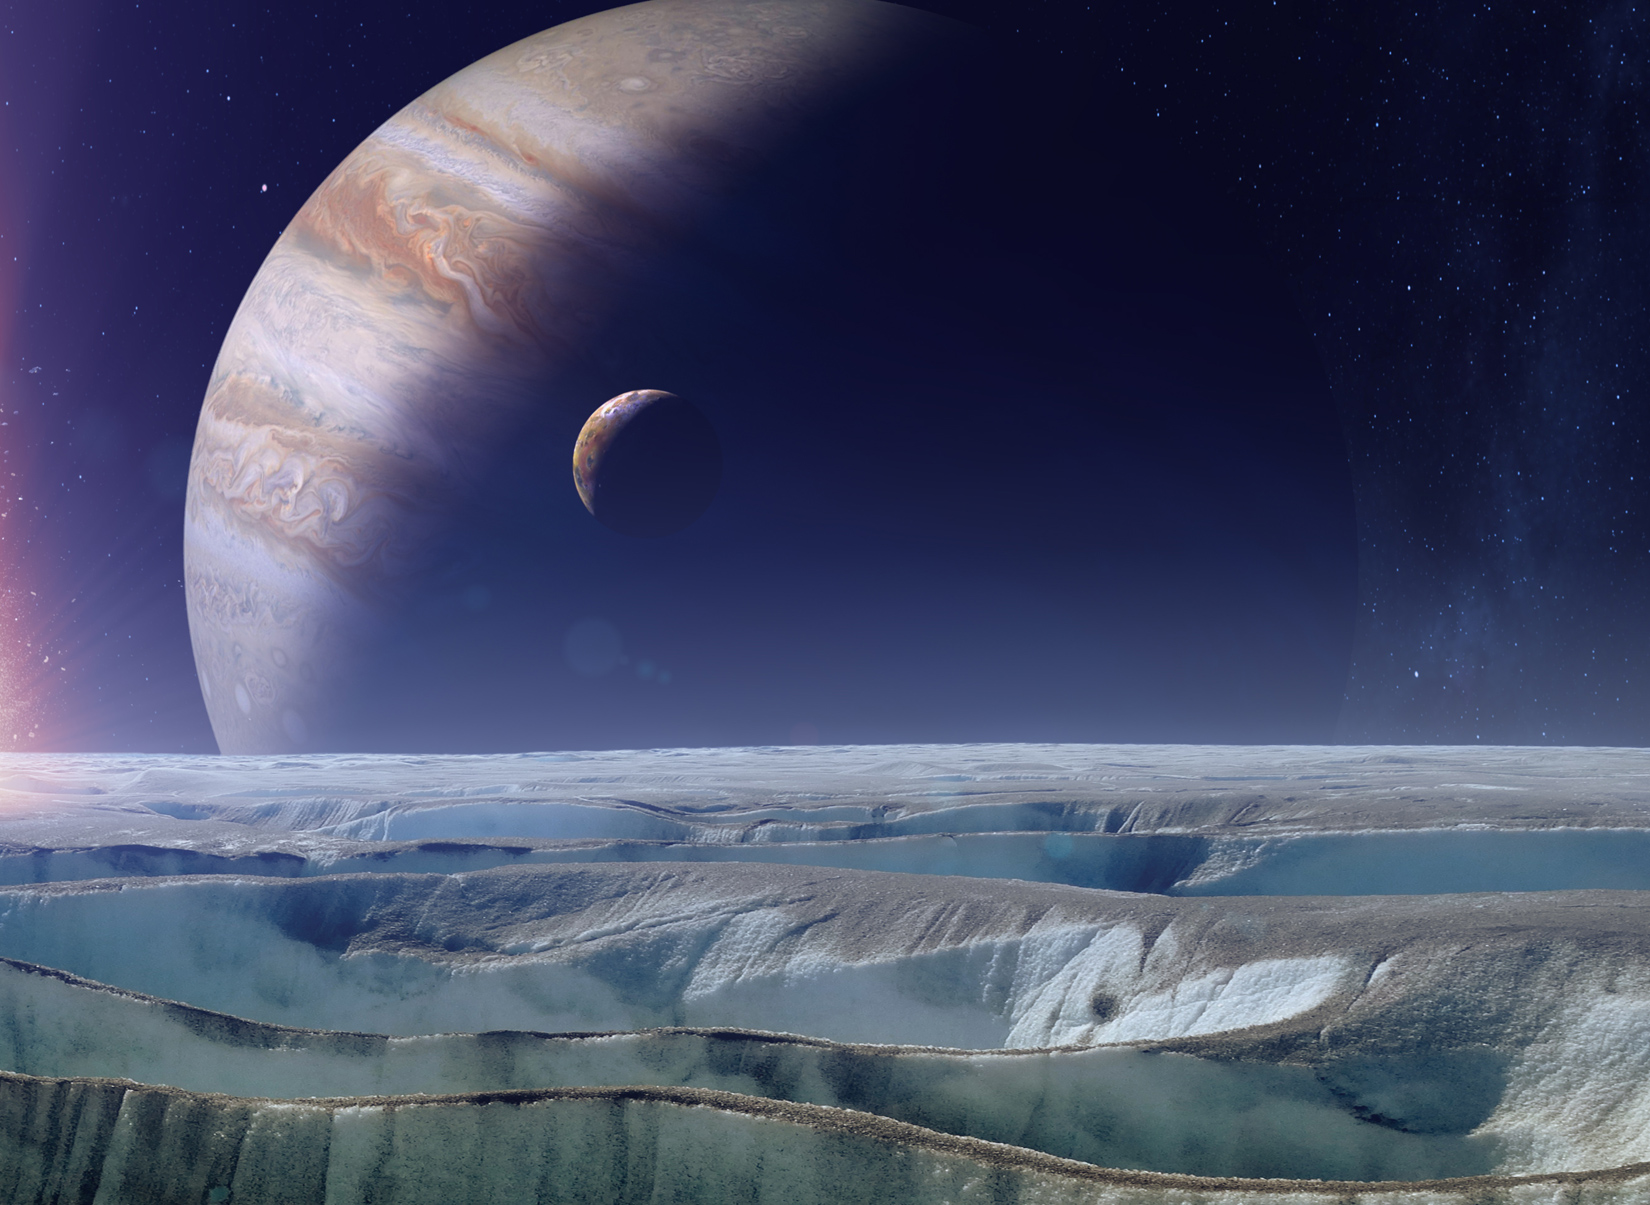 Group of scientists aim to make Pluto a planet again